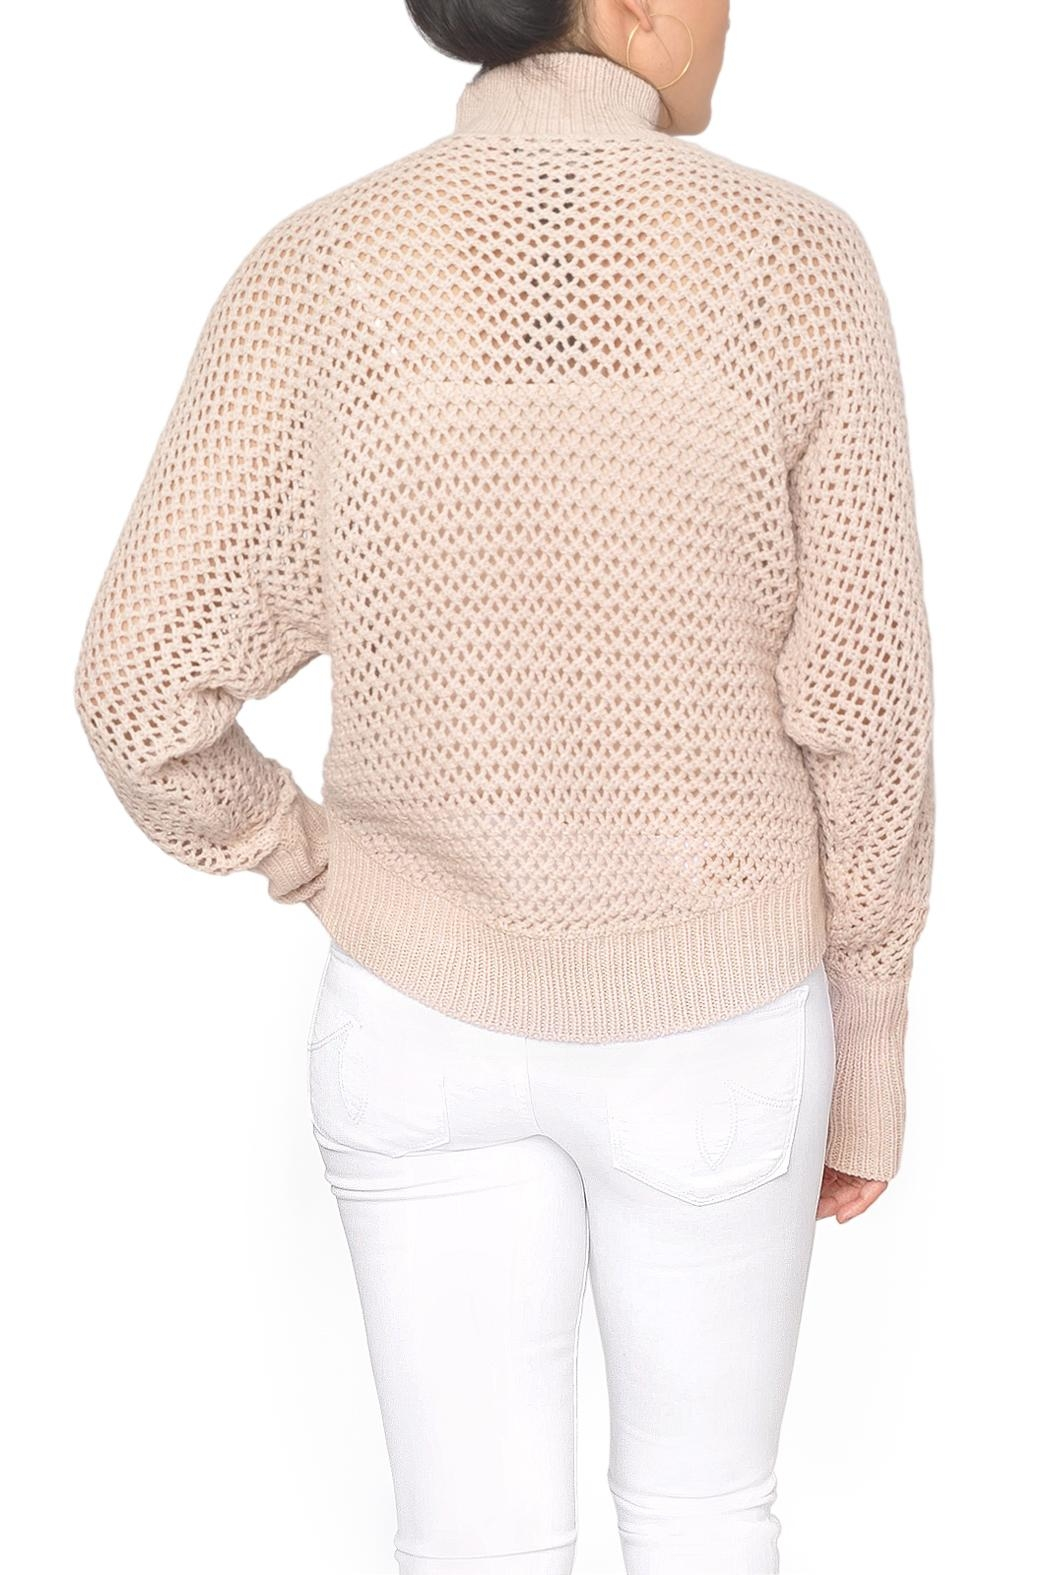 Fifth Label Pink Fishnet Sweater - Side Cropped Image